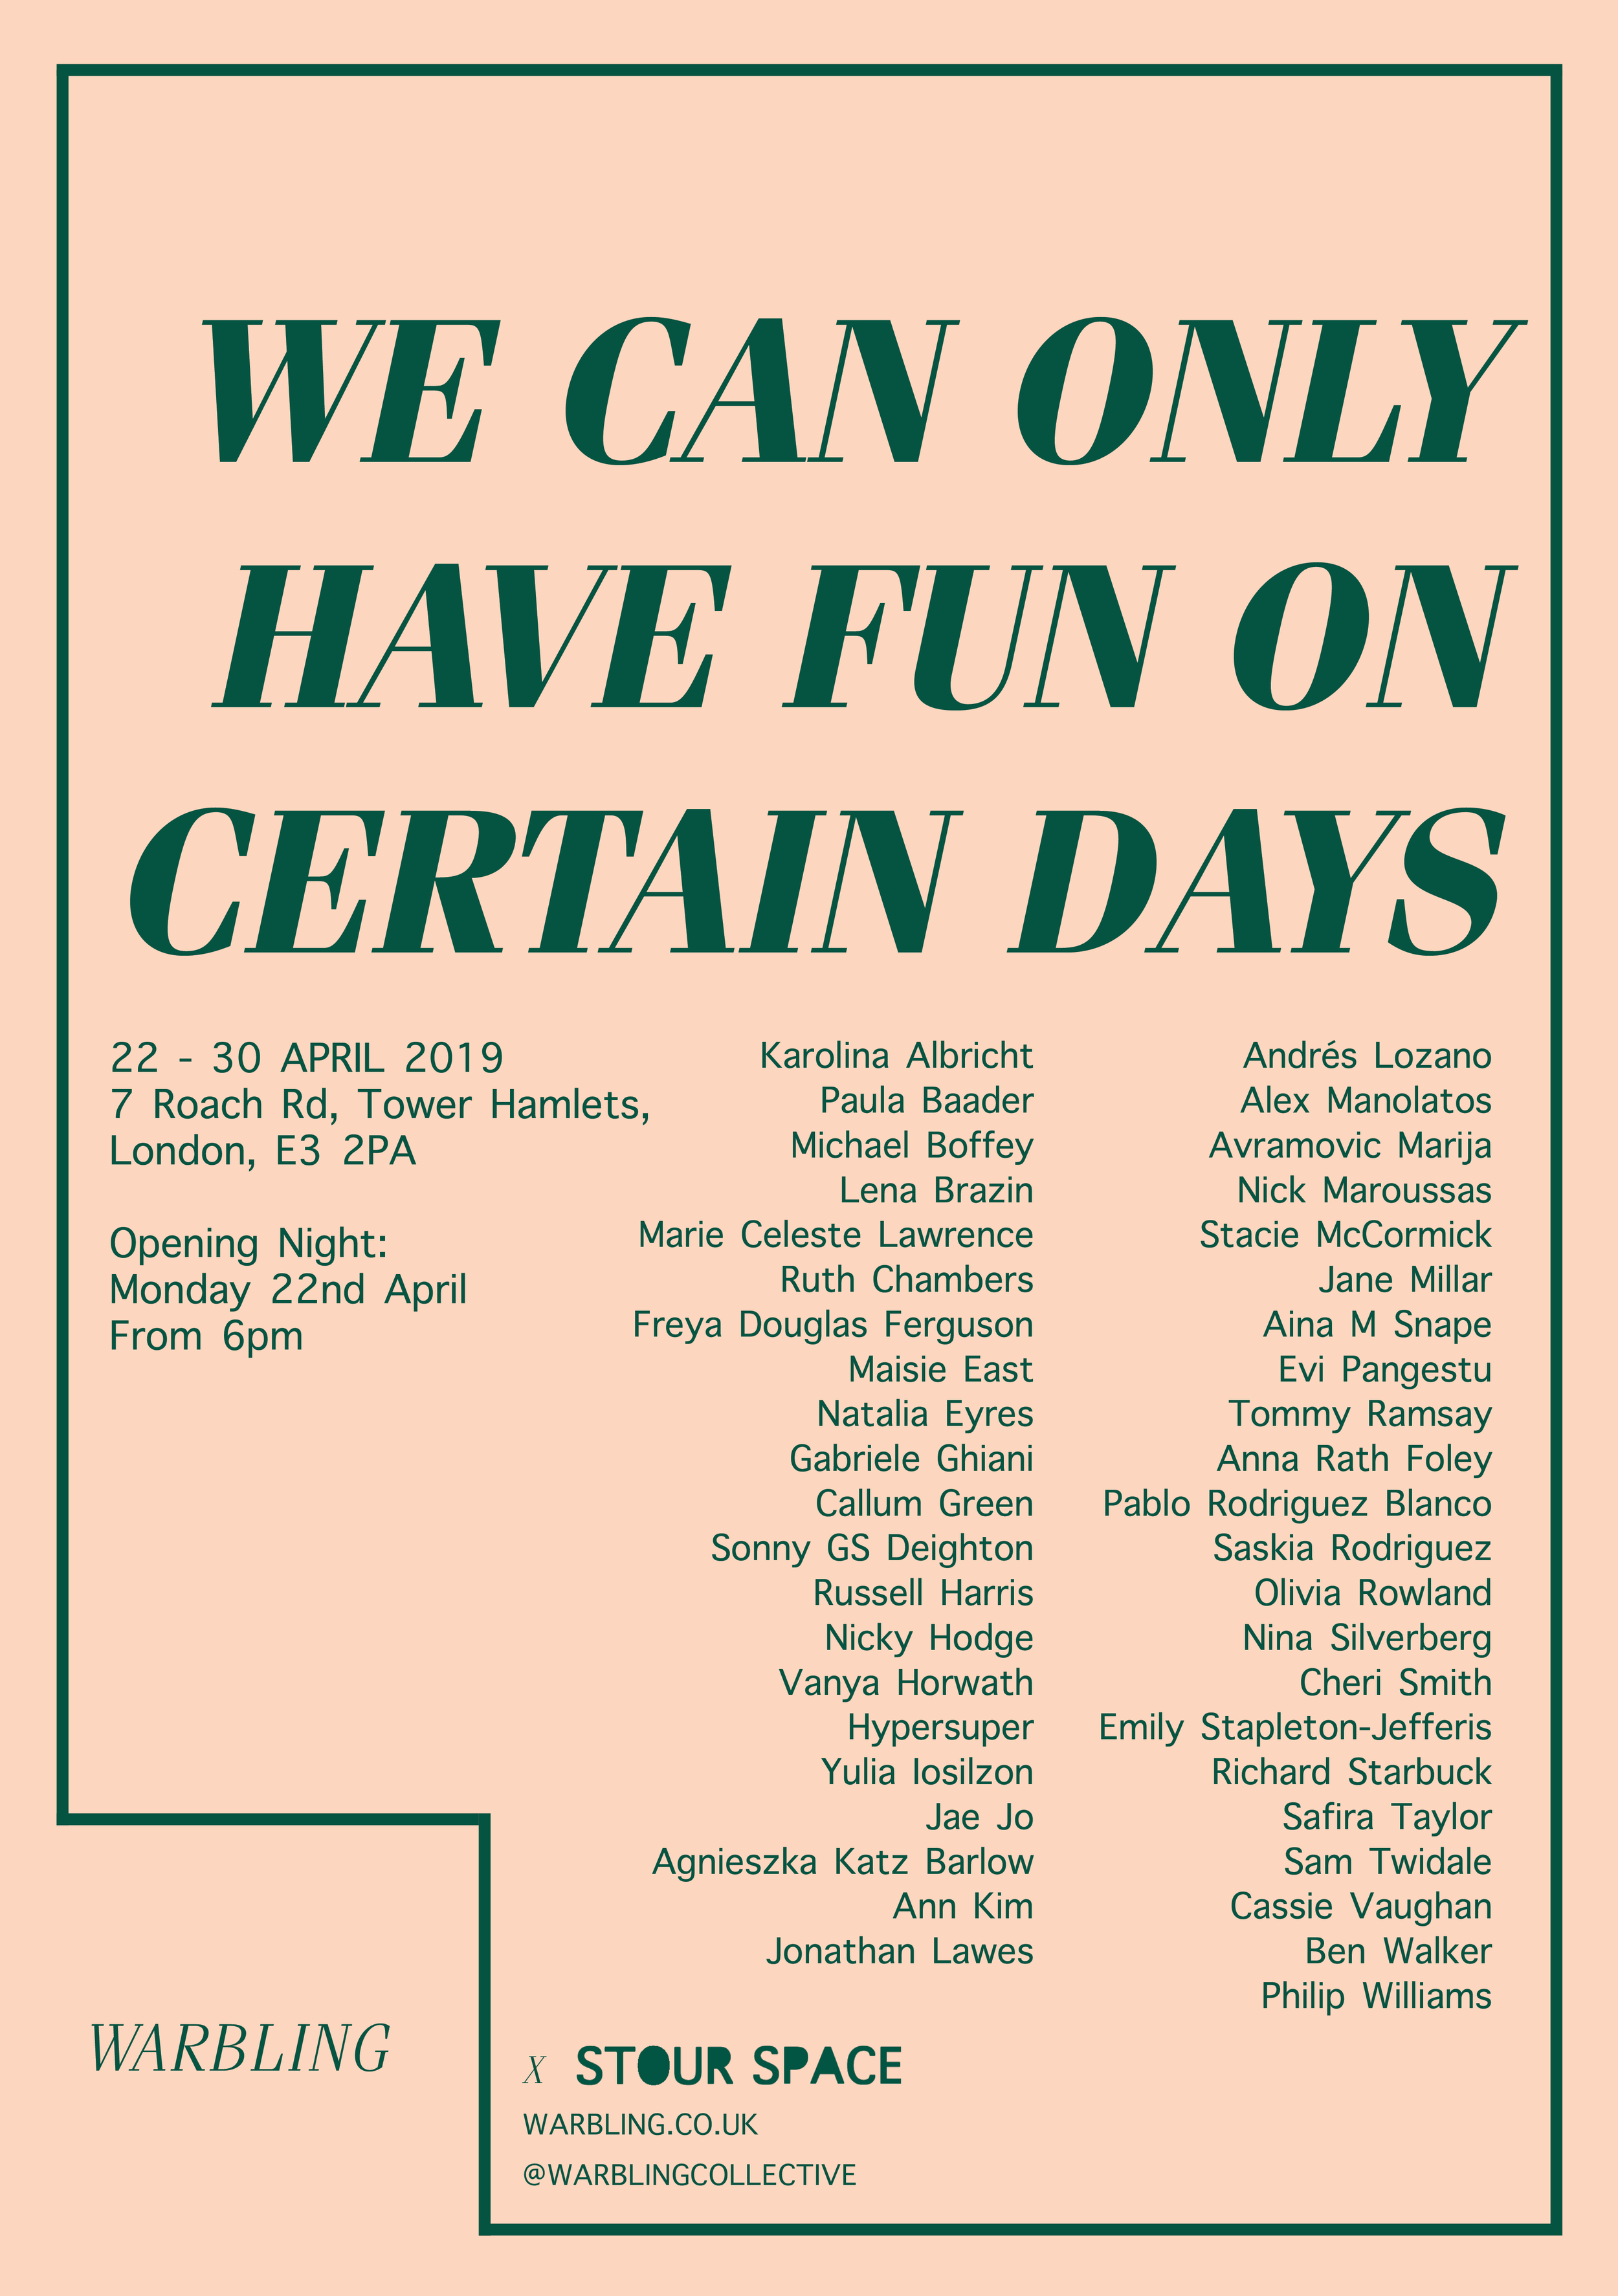 WE CAN ONLY HAVE FUN ON CERTAIN DAYS POSTER.png